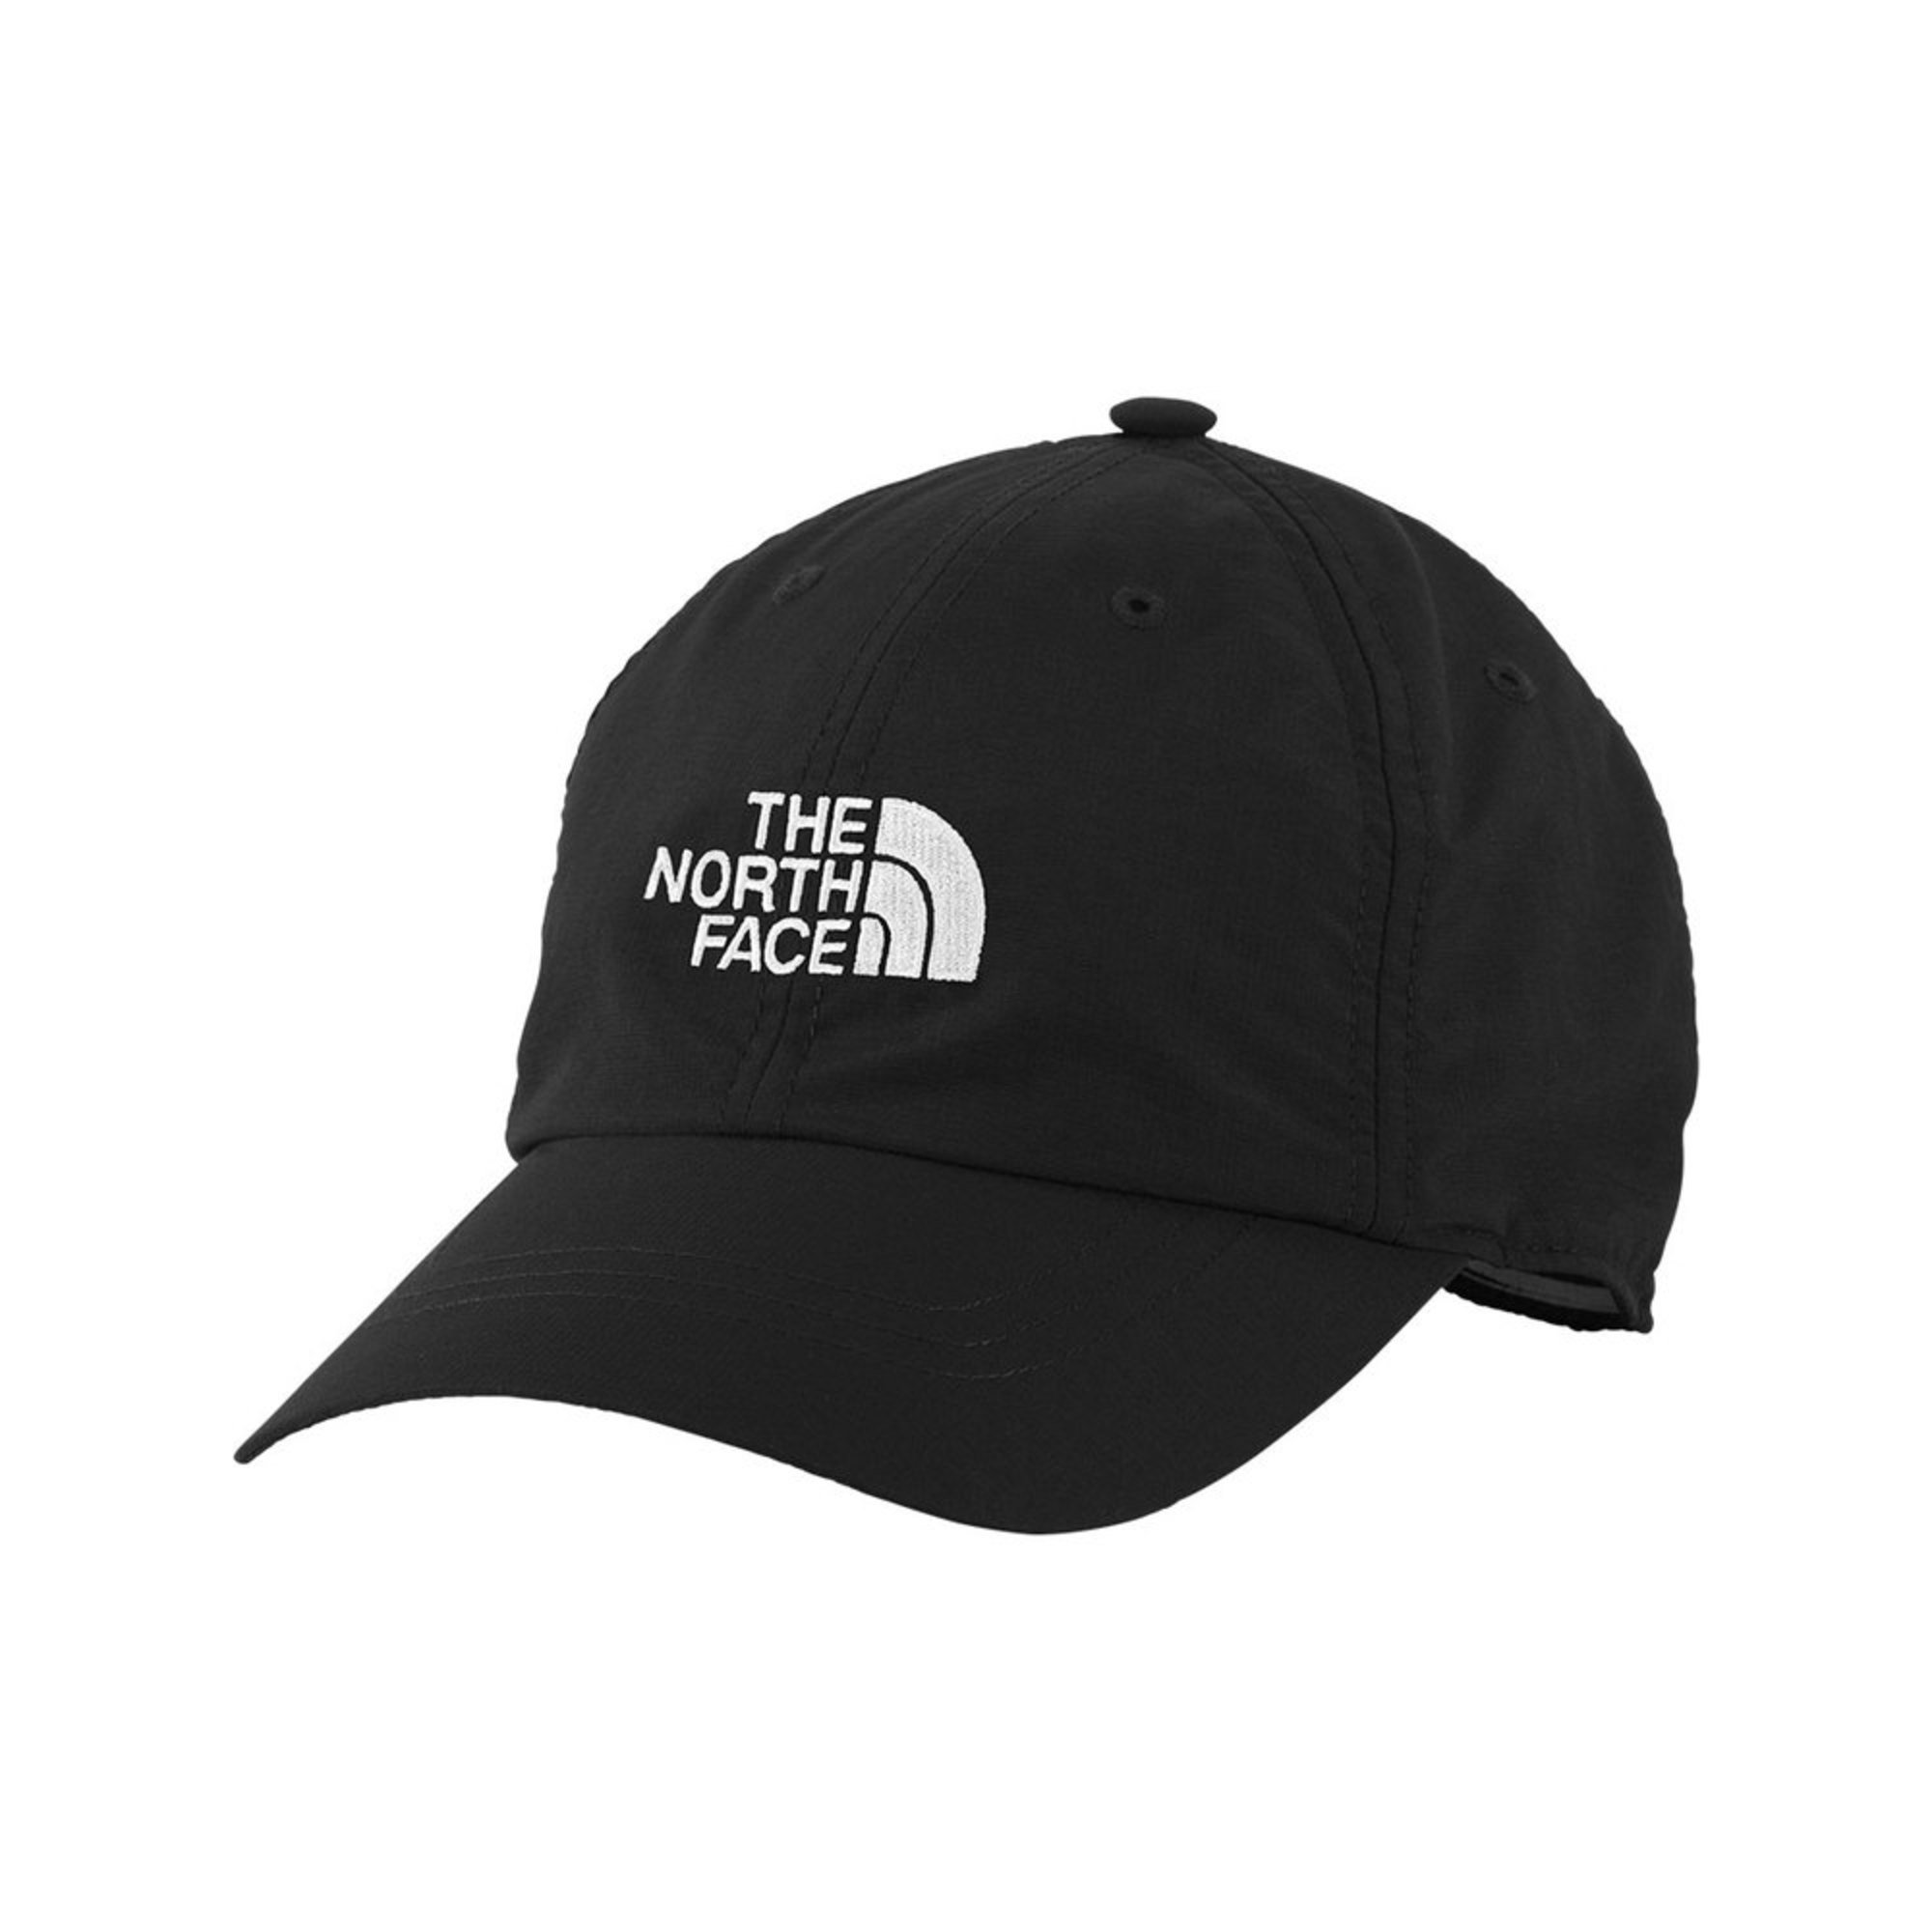 36d1eaefbb8 The North Face. The North Face Horizon Ball Cap